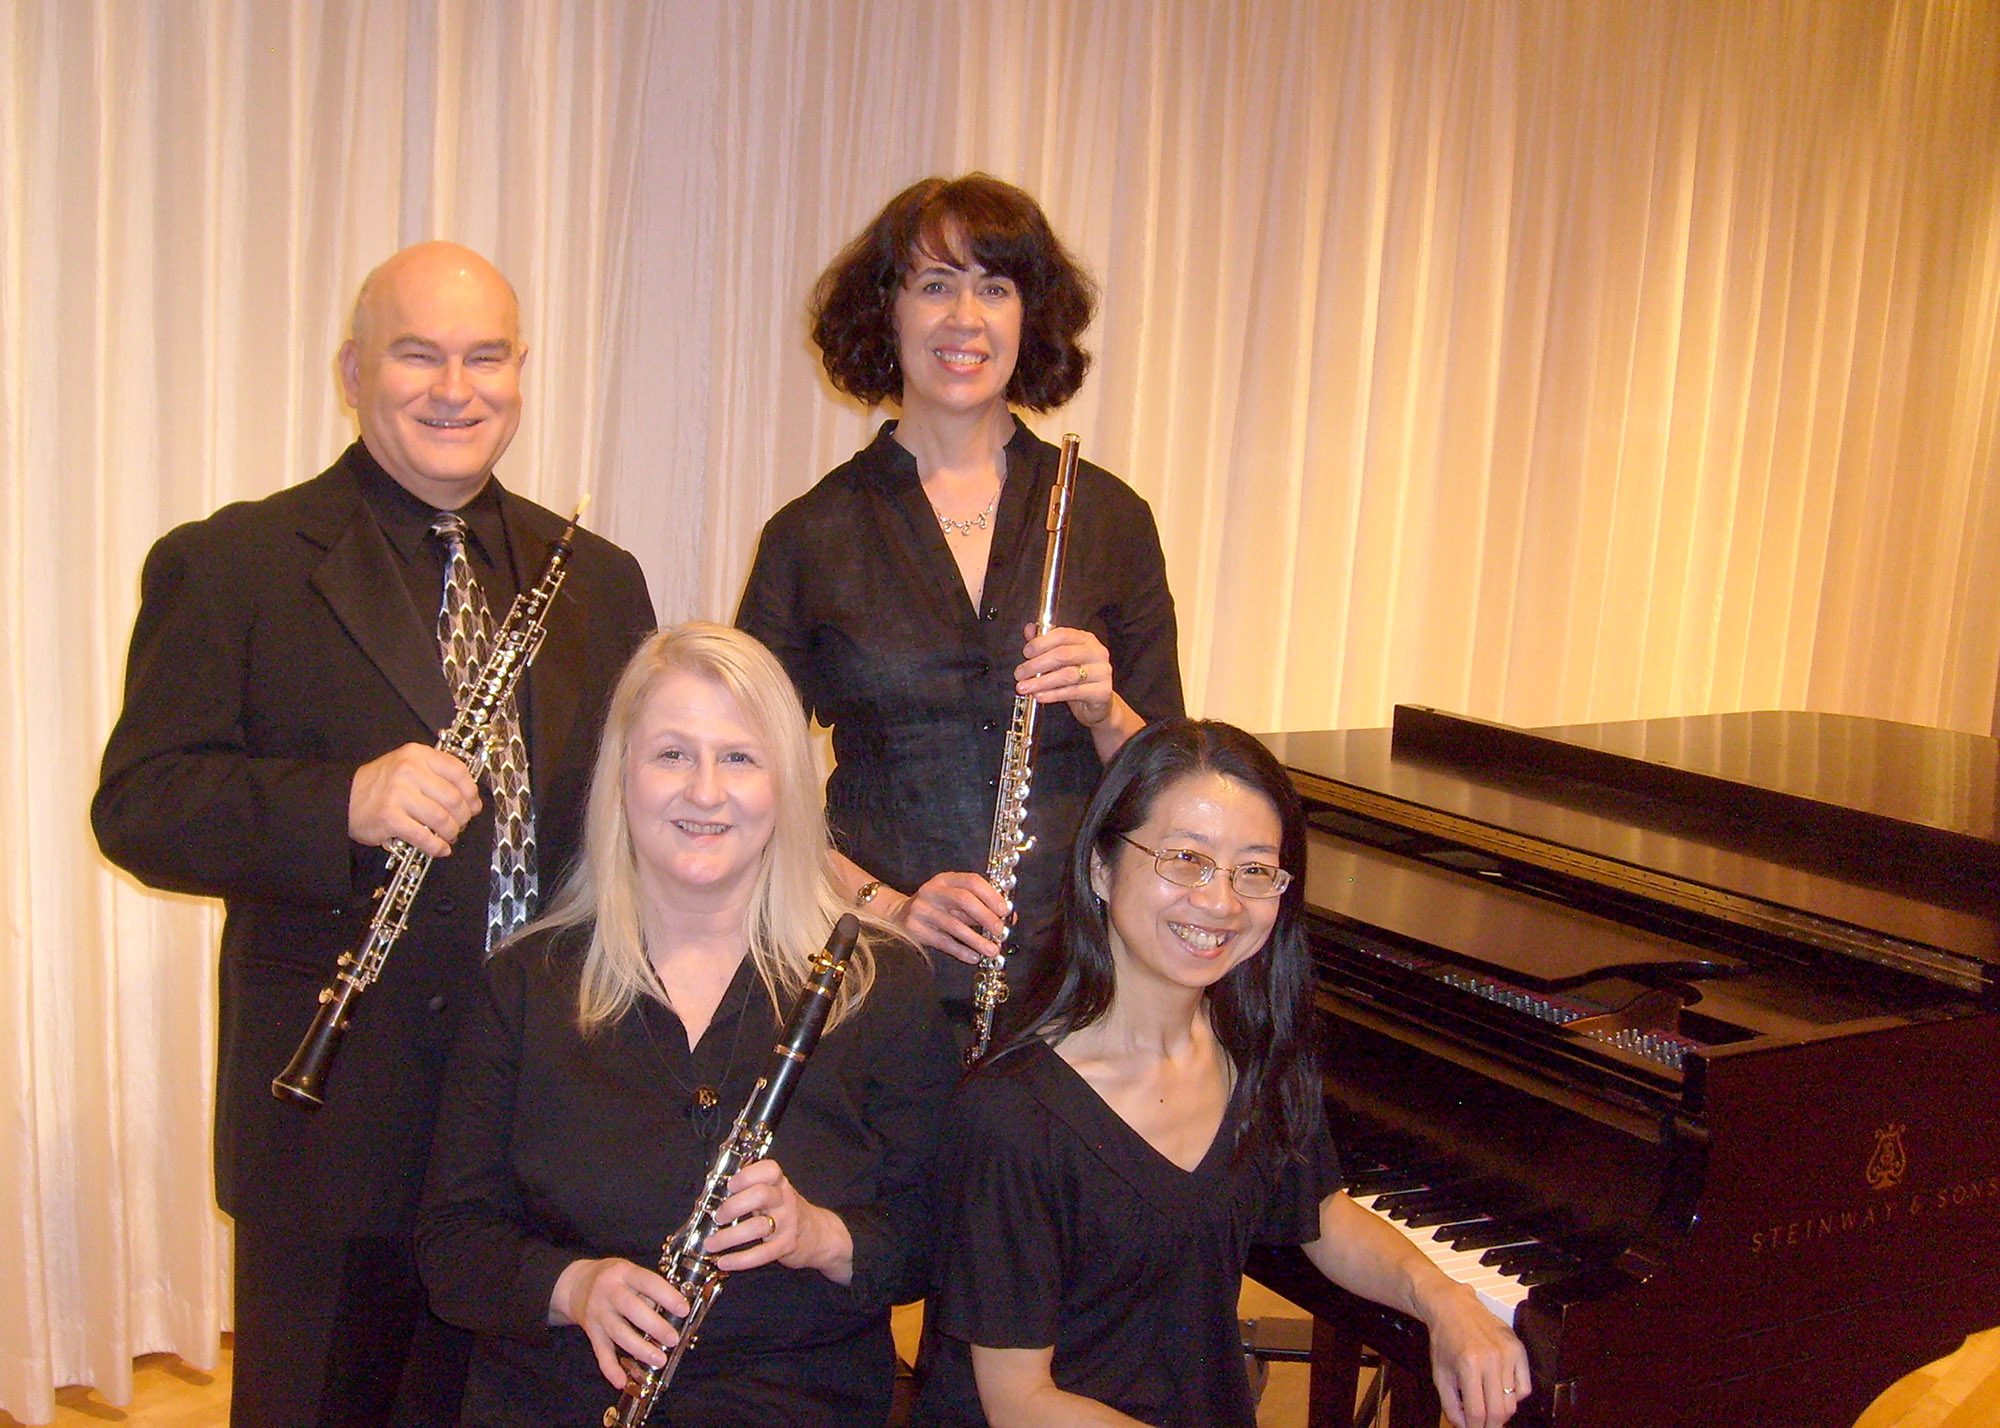 The wind and piano ensemble Eclipse, featuring (from left) Gerald Warlick, Jenny Rucker, Natalie Syring, and Miho Fisher will perform a concert at 7:30 p.m. Sept. 16 at the UCO Jazz Lab, 100 E. Fifth Street in Edmond.